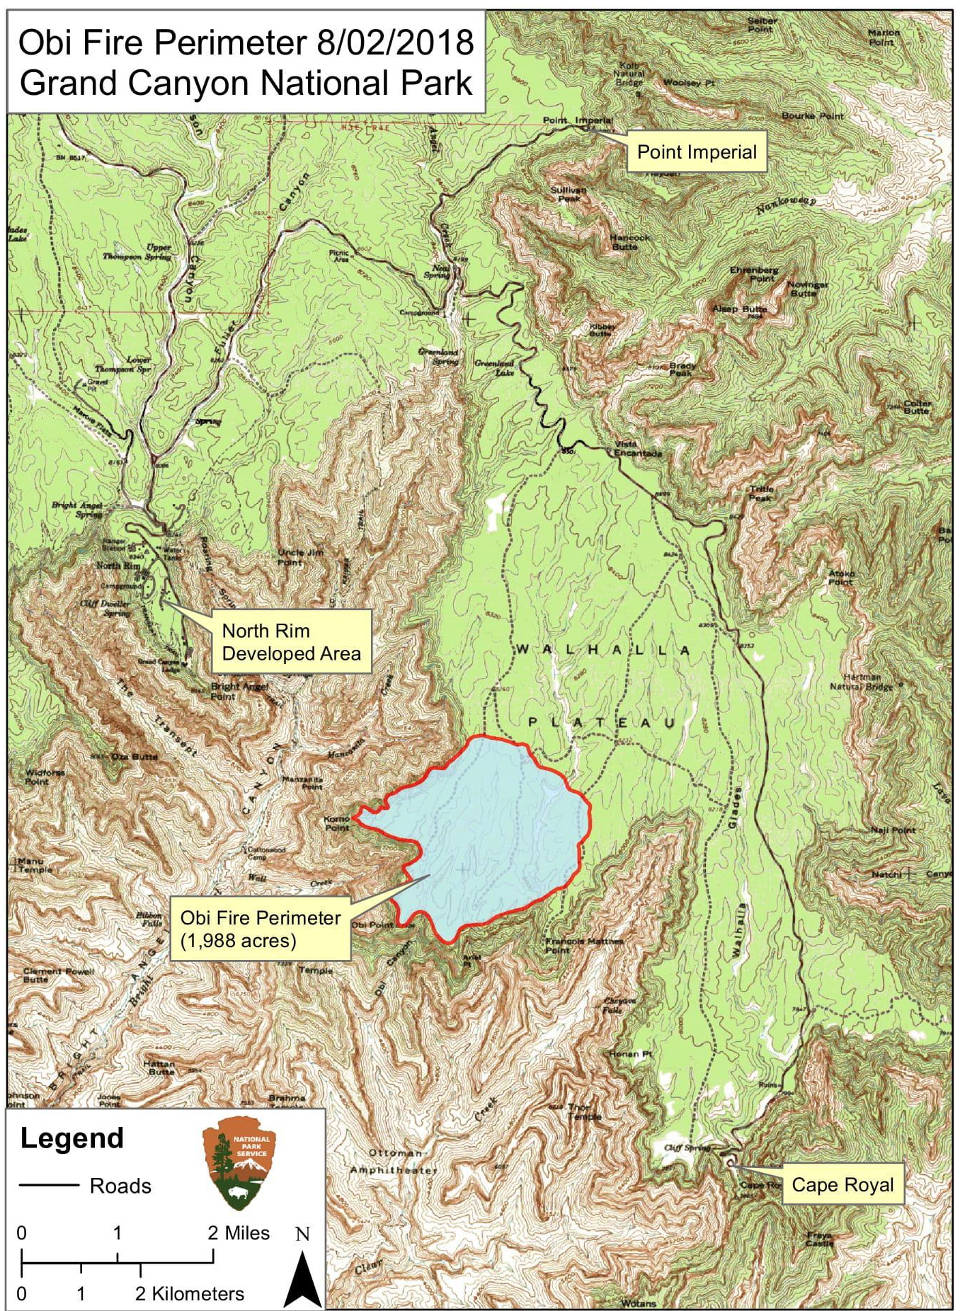 map from August 2, 2018 that show the location of the Obi Fire in relation to the North Rim Developed Area and the Walhalla Plateau.